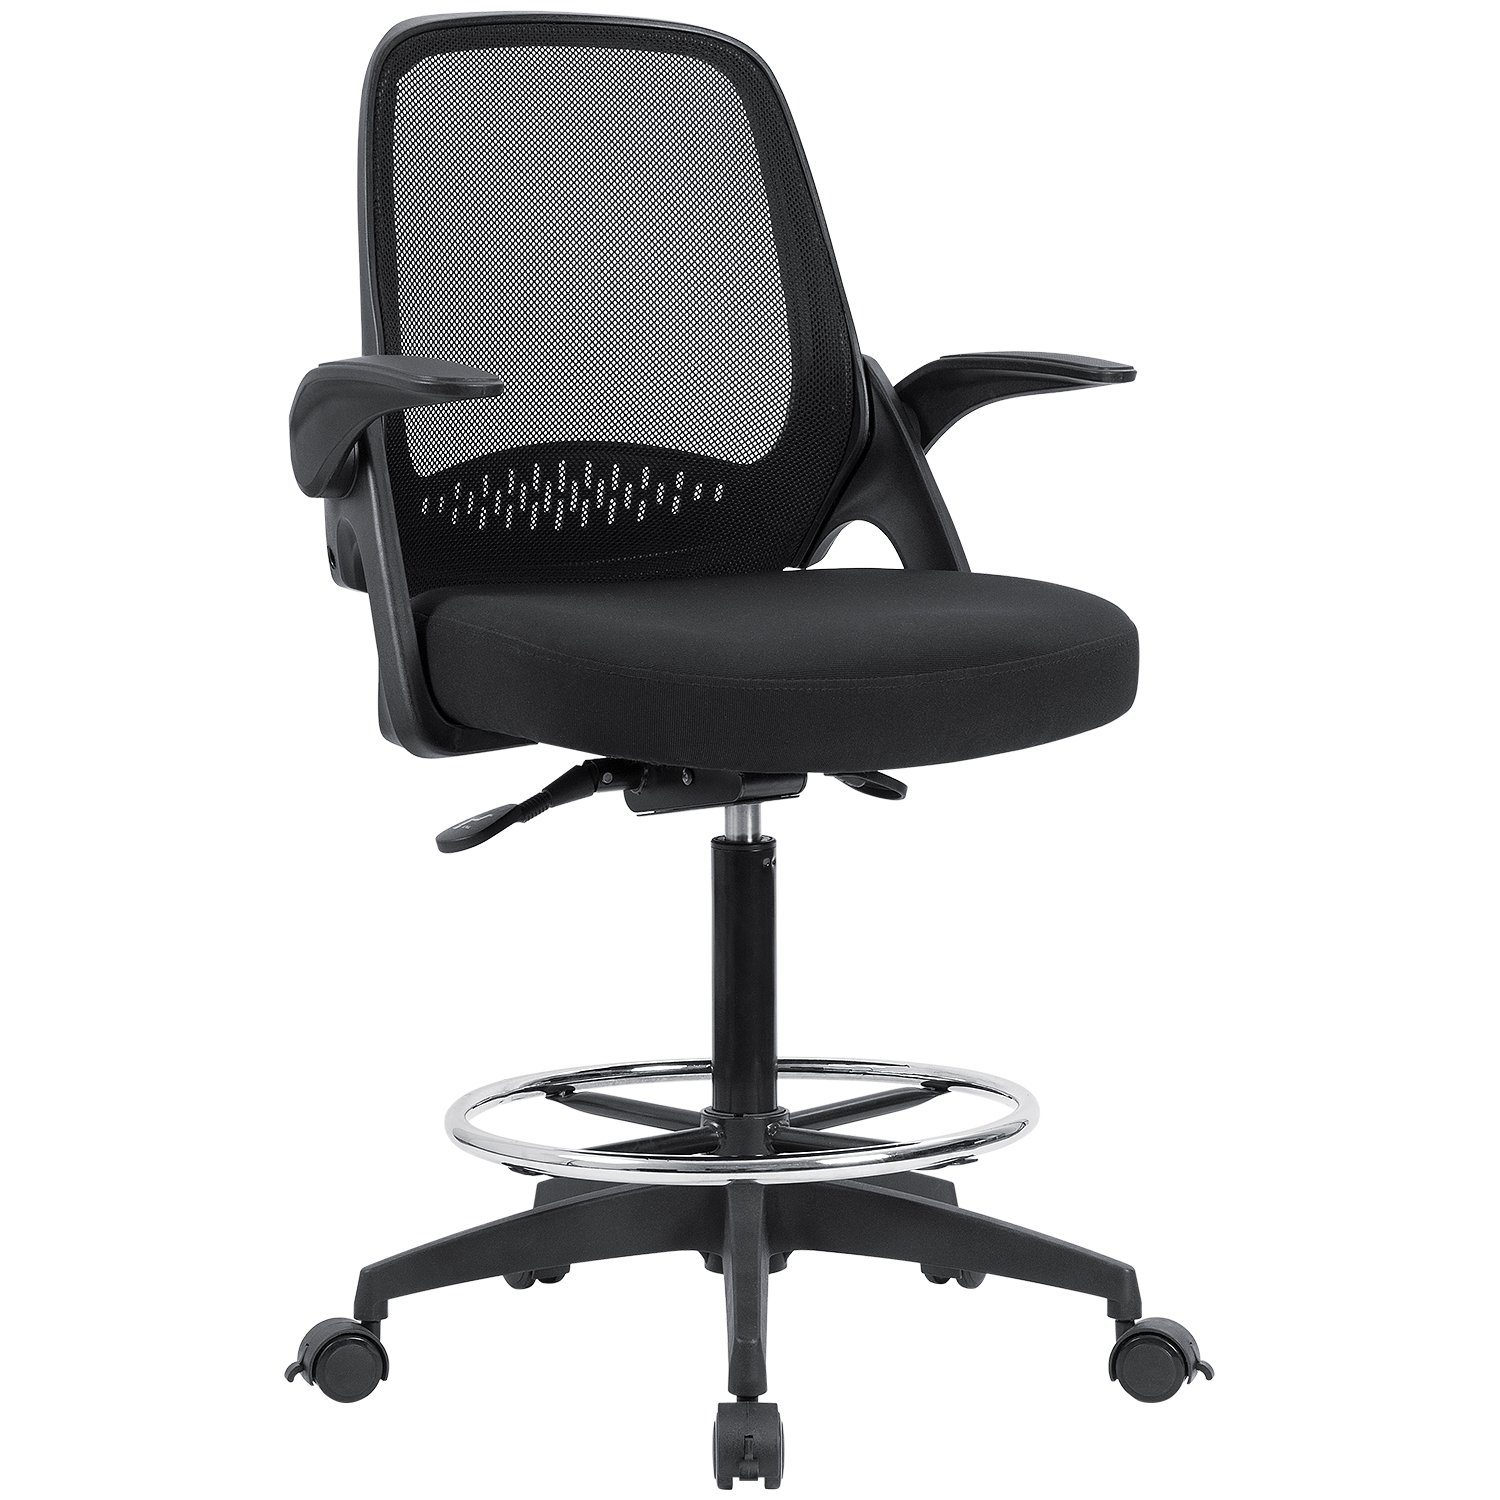 Devoko Mesh Swivel Office Chair Caster Wheel Locable Drafting Chair Flip-up Arms Desk Chair, Standing Function Task Chair with Adjustable Footrest Ring (Black)